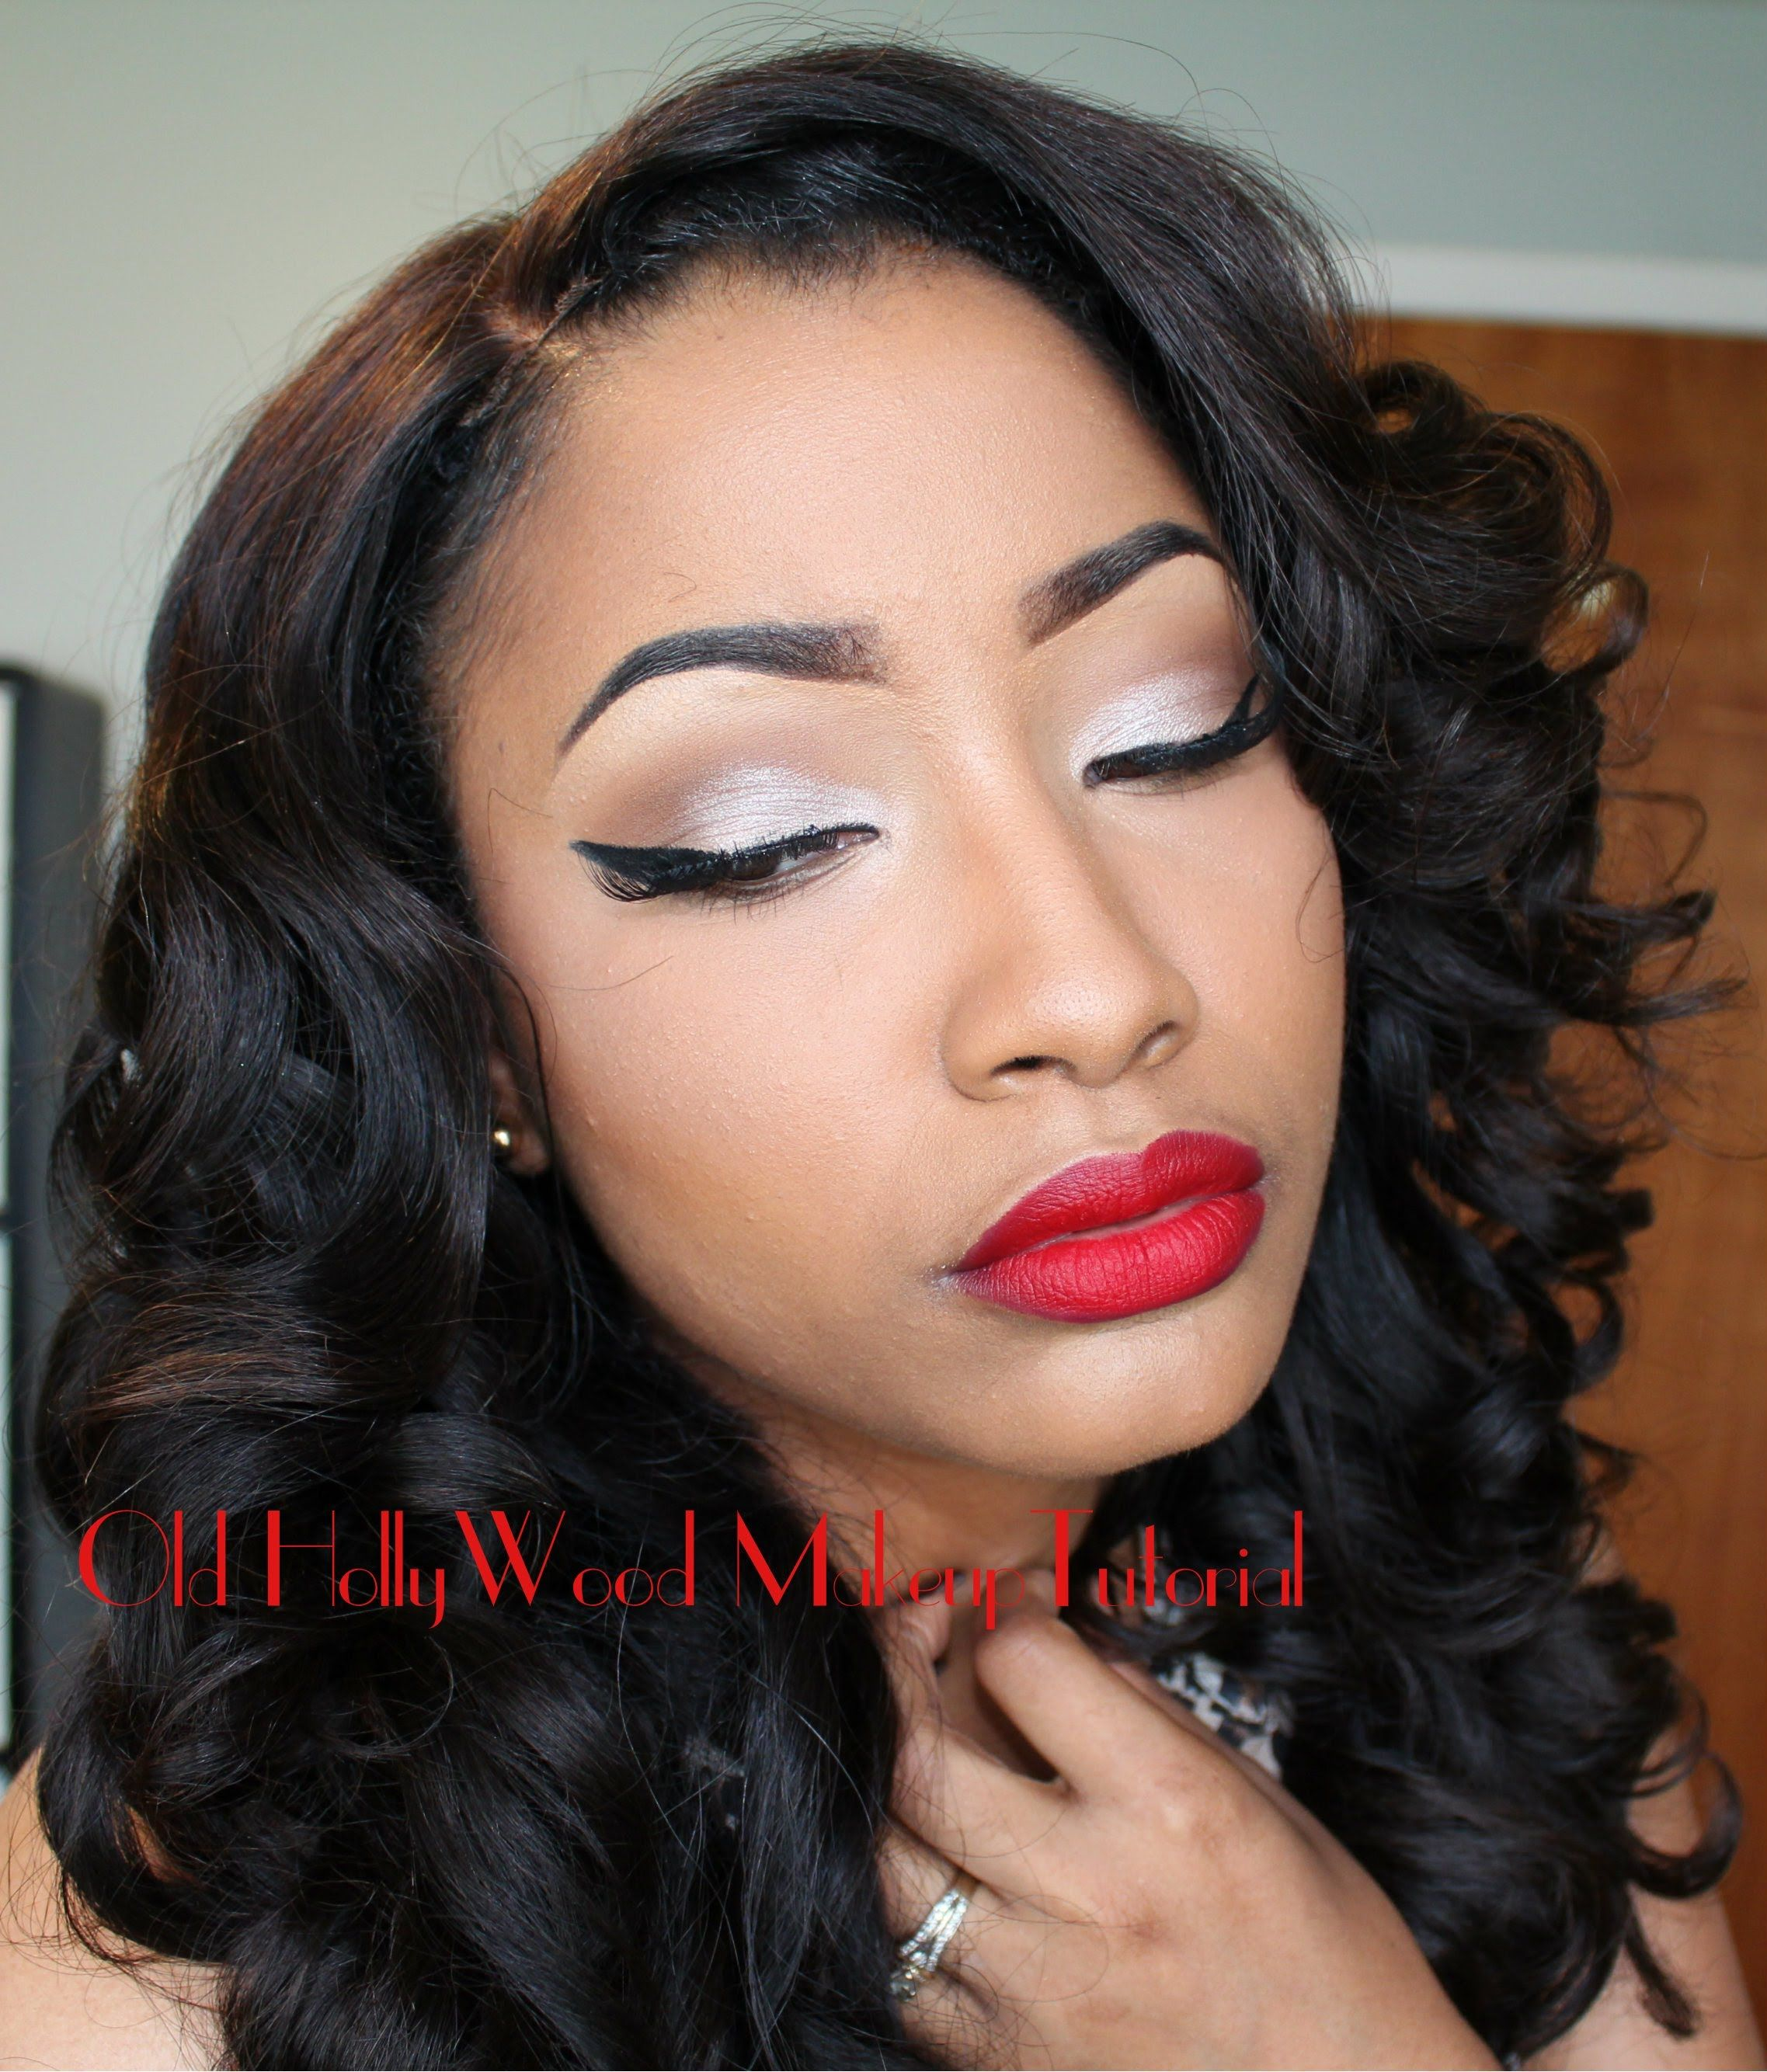 Watch me transformold hollywood makeup tutorial 3 pinterest watch me transformold hollywood makeup tutorial baditri Image collections